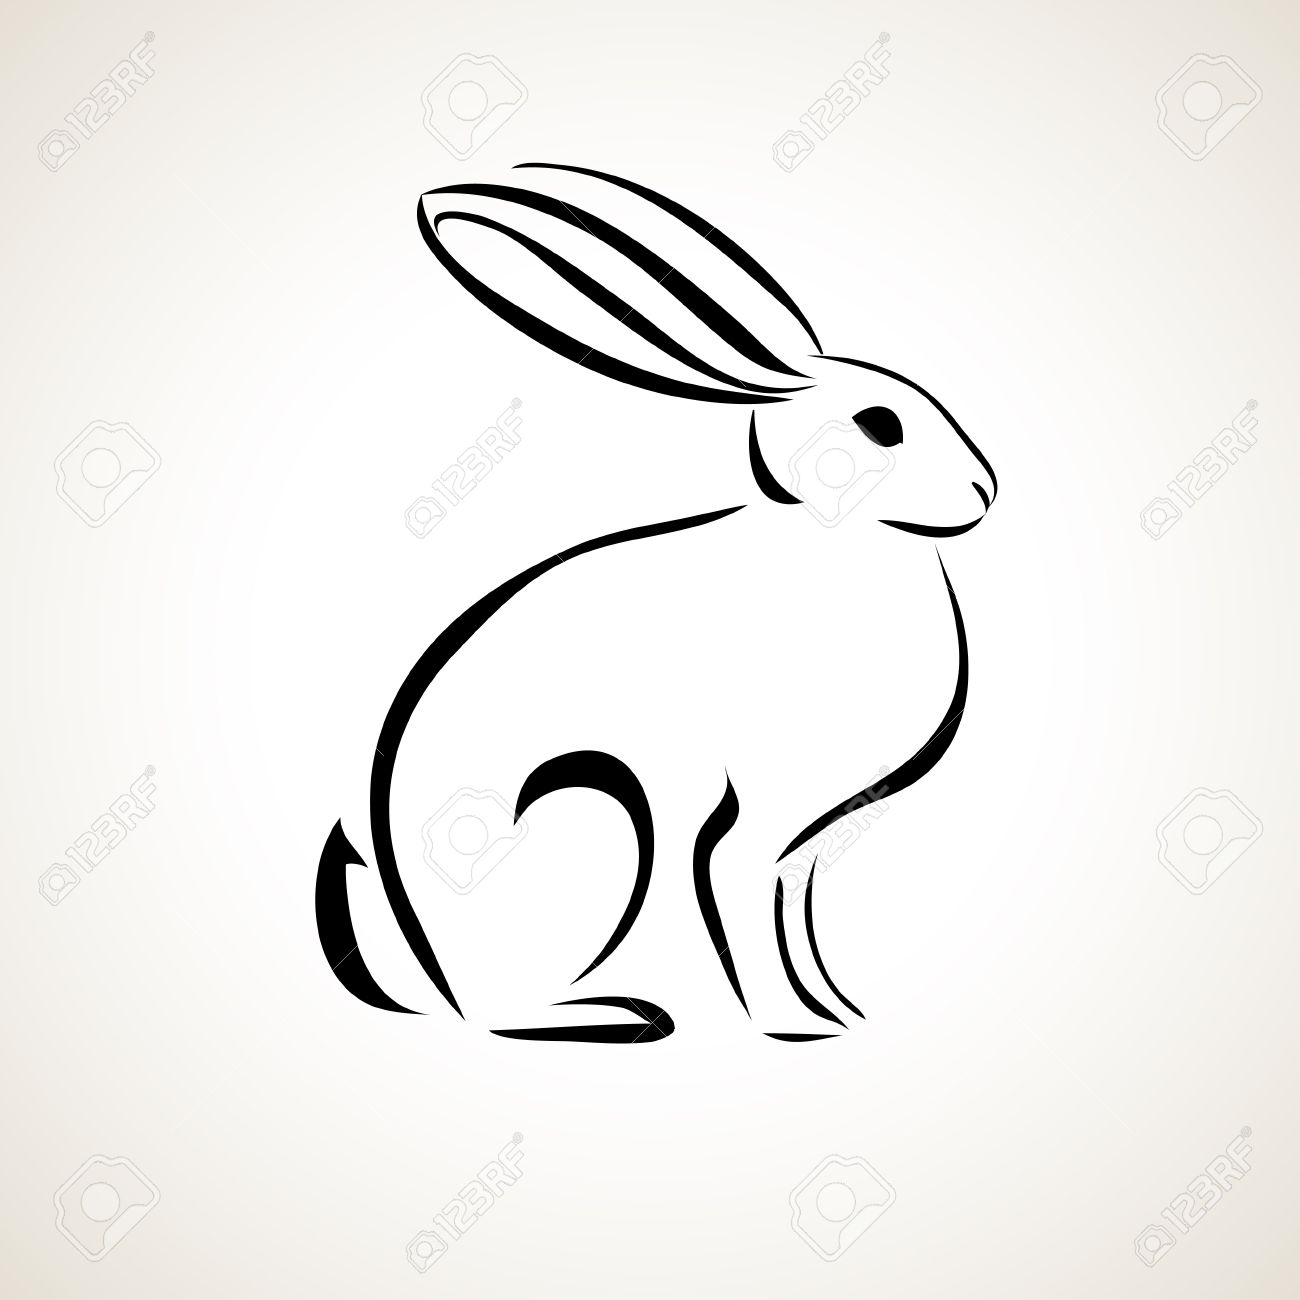 easter card with rabbit outline royalty free cliparts vectors